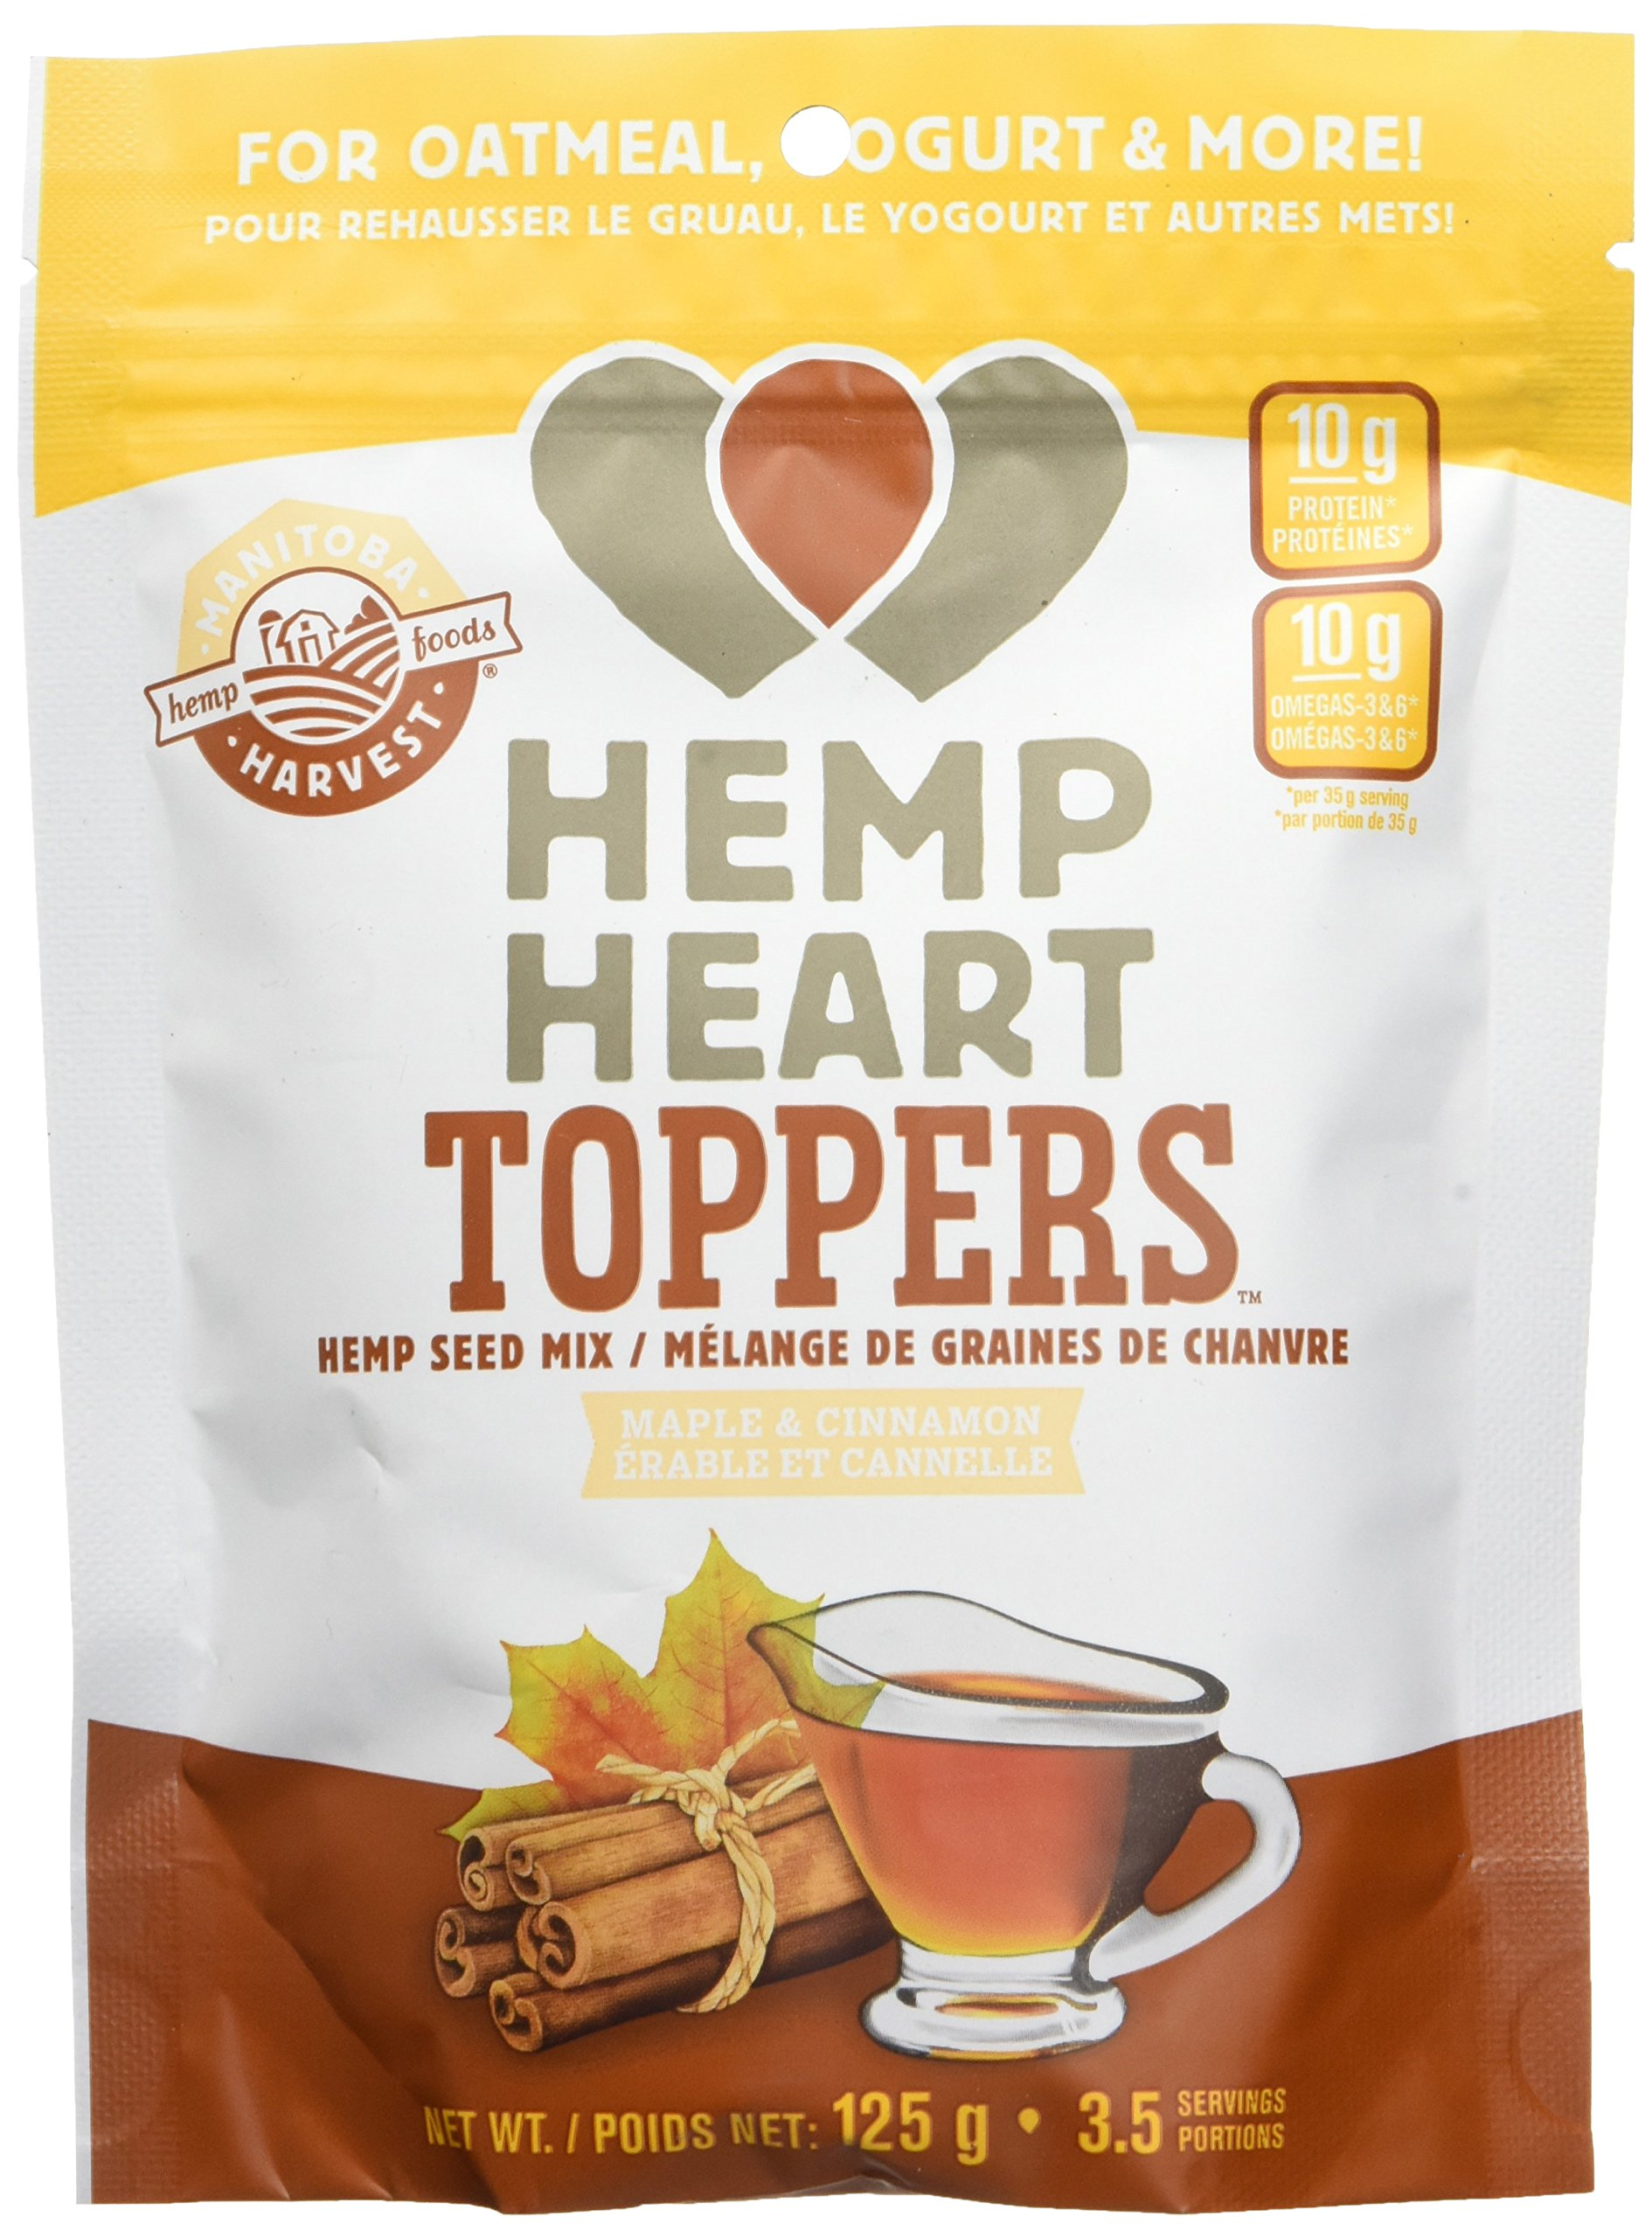 Manitoba Harvest Hemp Heart Toppers, Maple & Cinnamon, 4.4oz; with 10g of Protein & Omegas, 3g of Fiber per Serving, Non-GMO